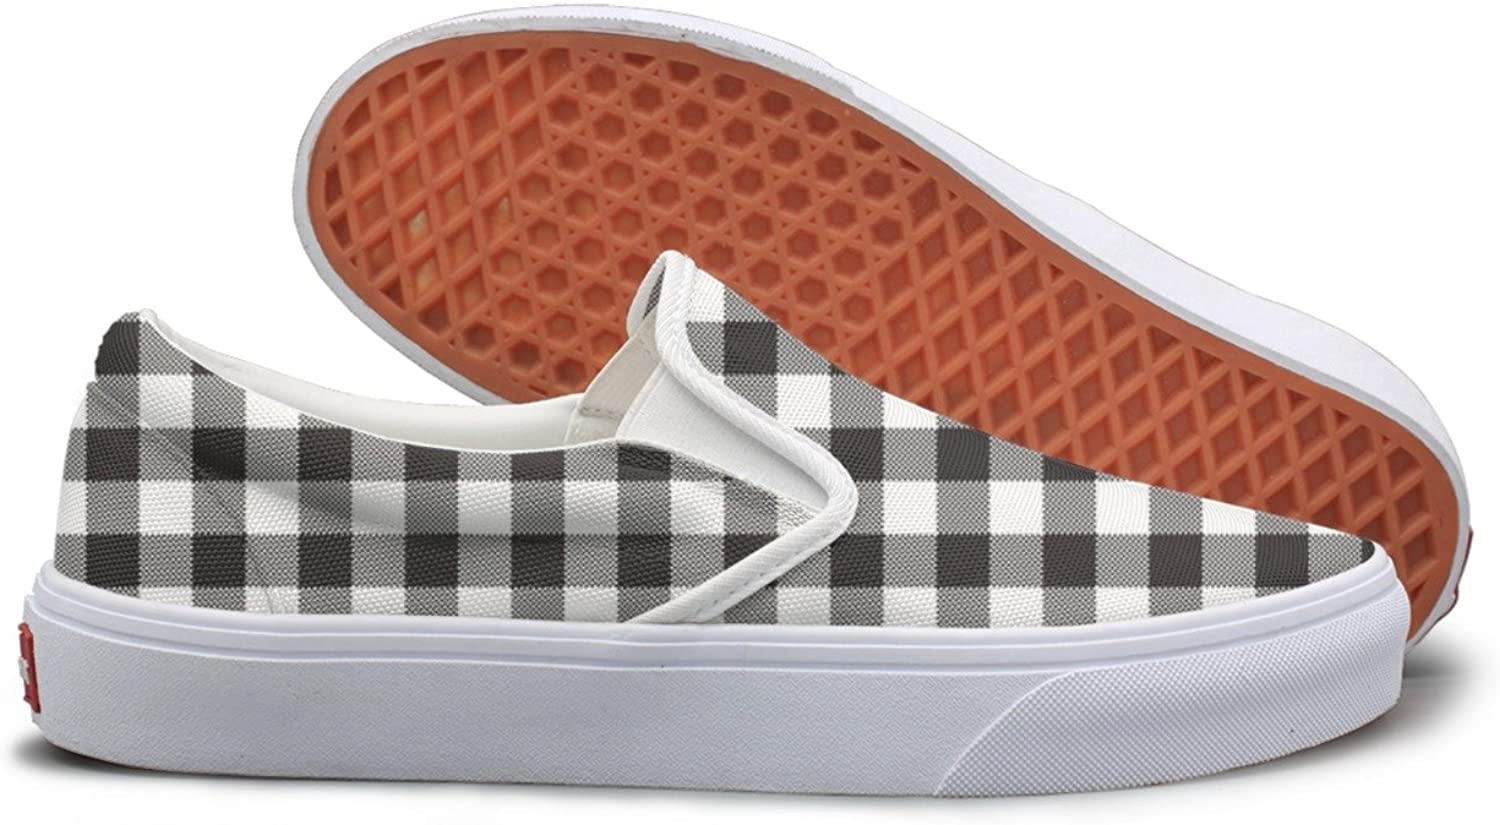 Lalige Black White Checkerboard Womens Fashion Canvas Slip-on Walking shoes